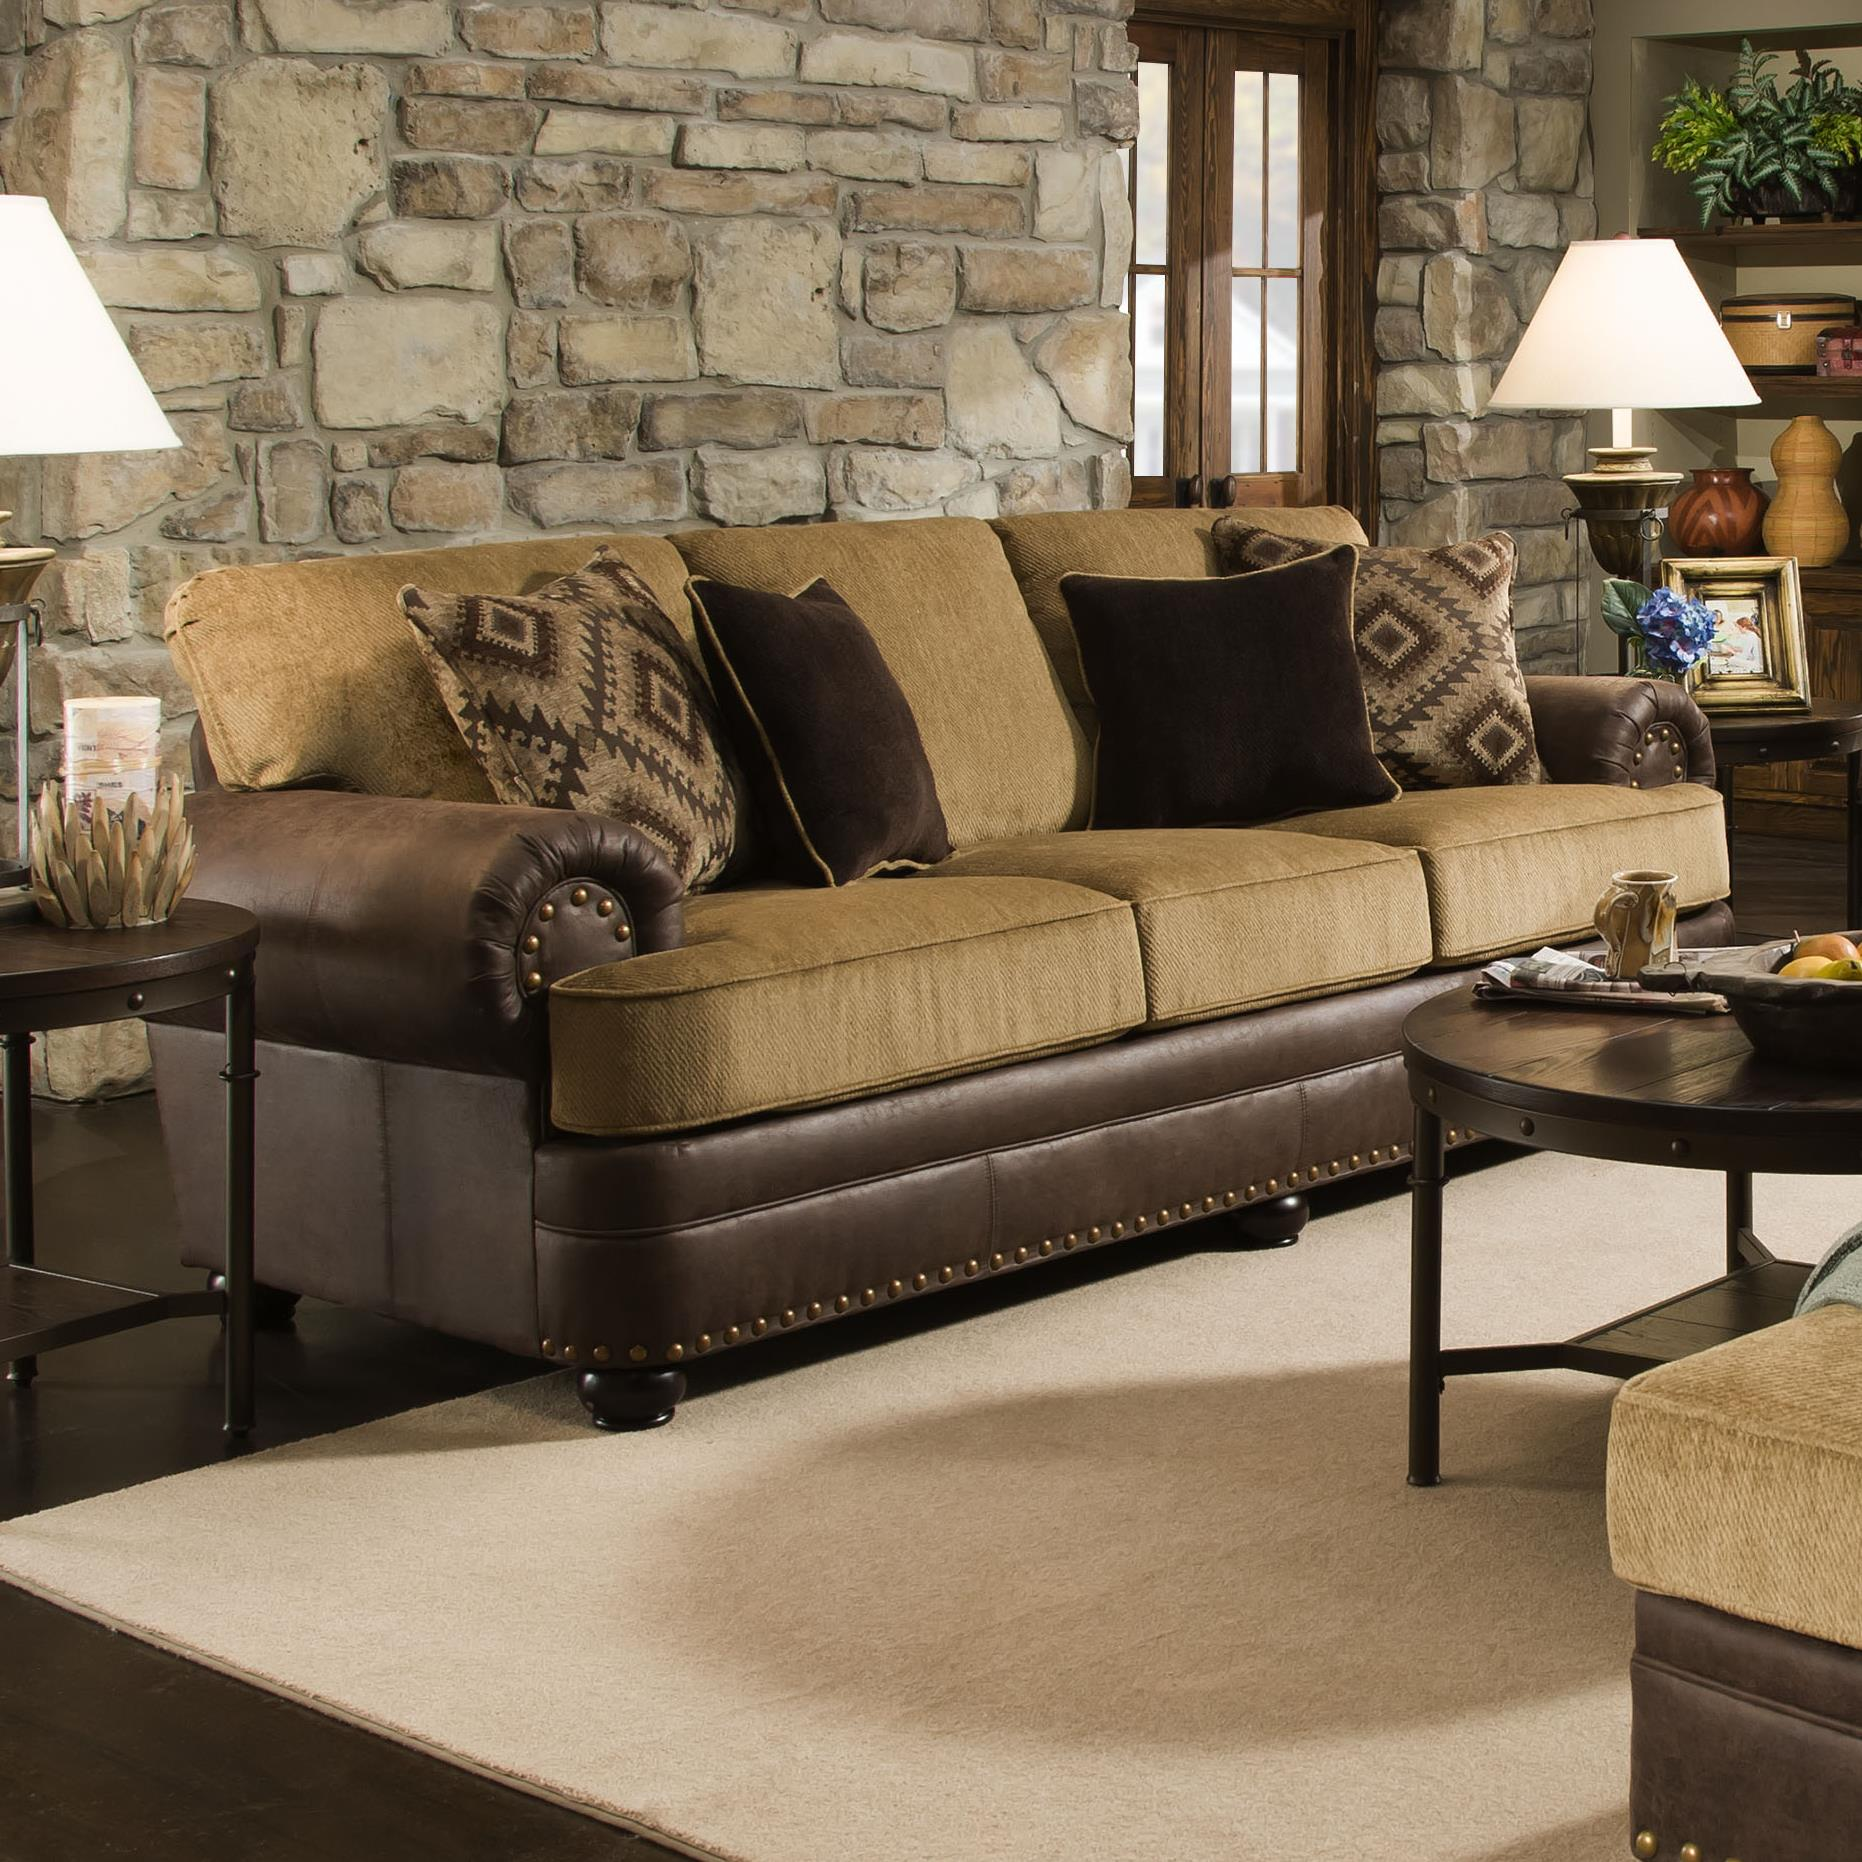 Simmons Upholstery 7541 Rustic Style Sofa with Nailhead